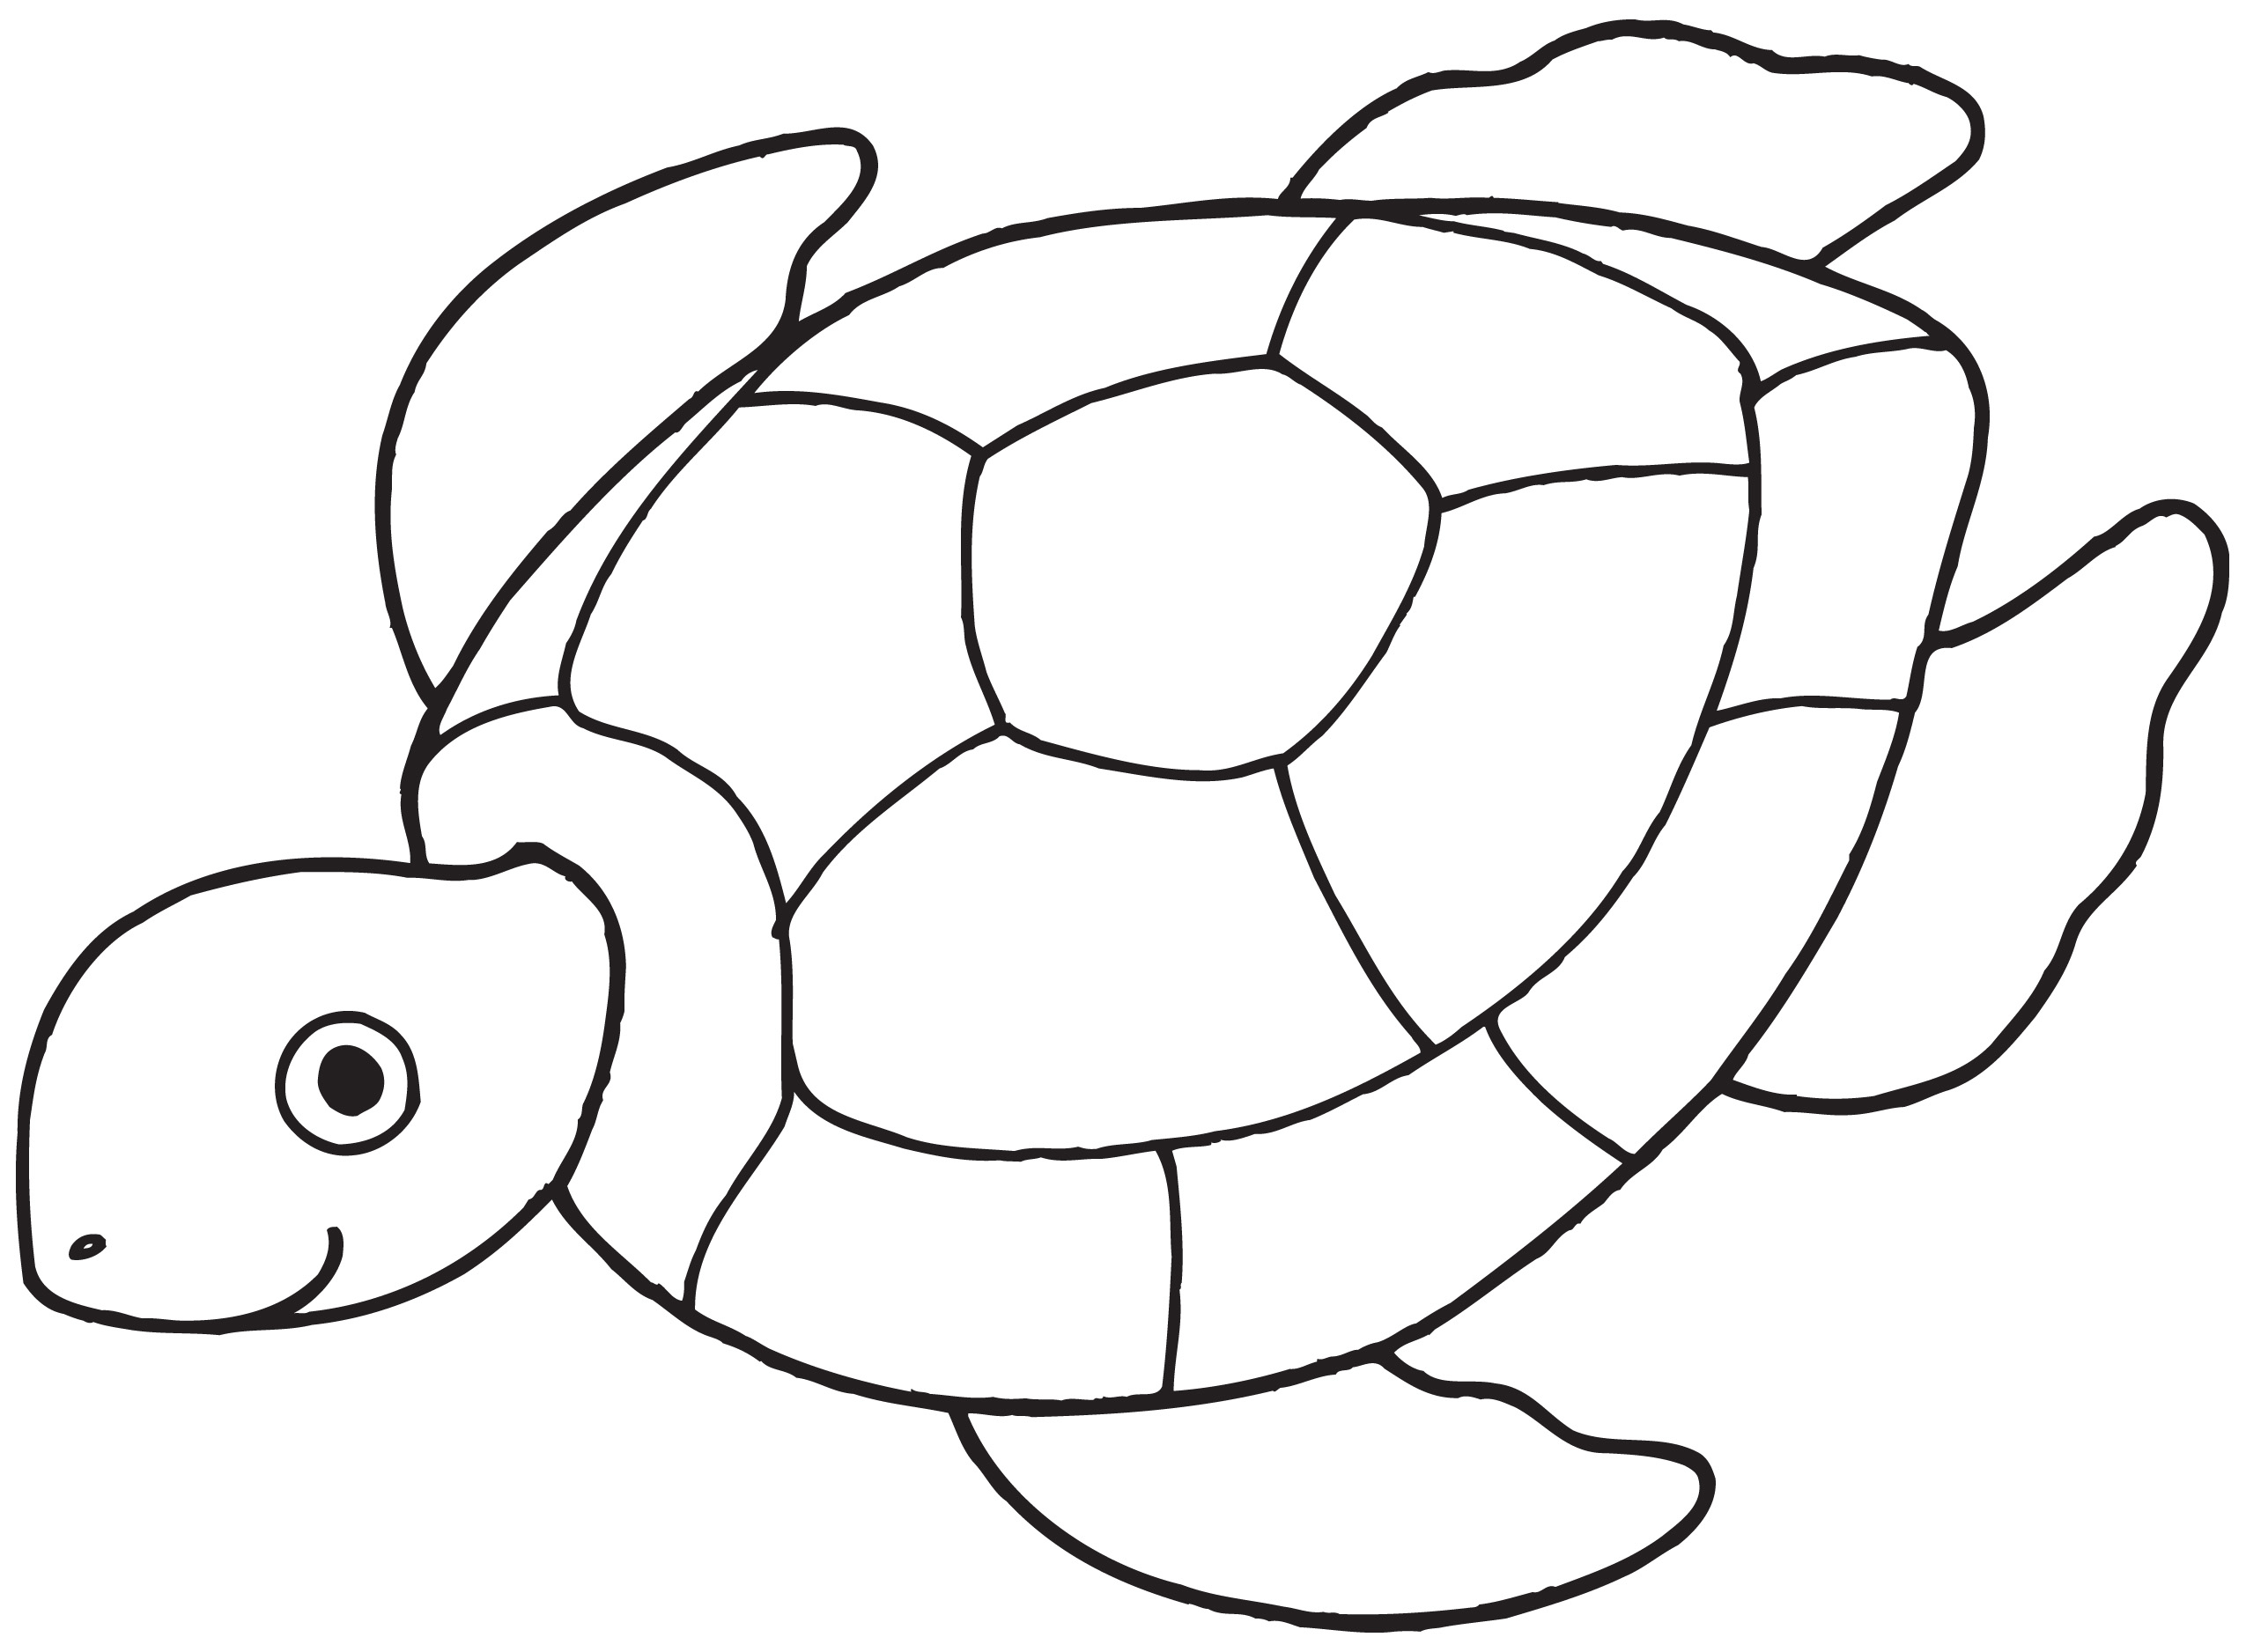 2550x1876 Easy Sea Turtle Drawing Sea Turtle Clipart Turtle Head